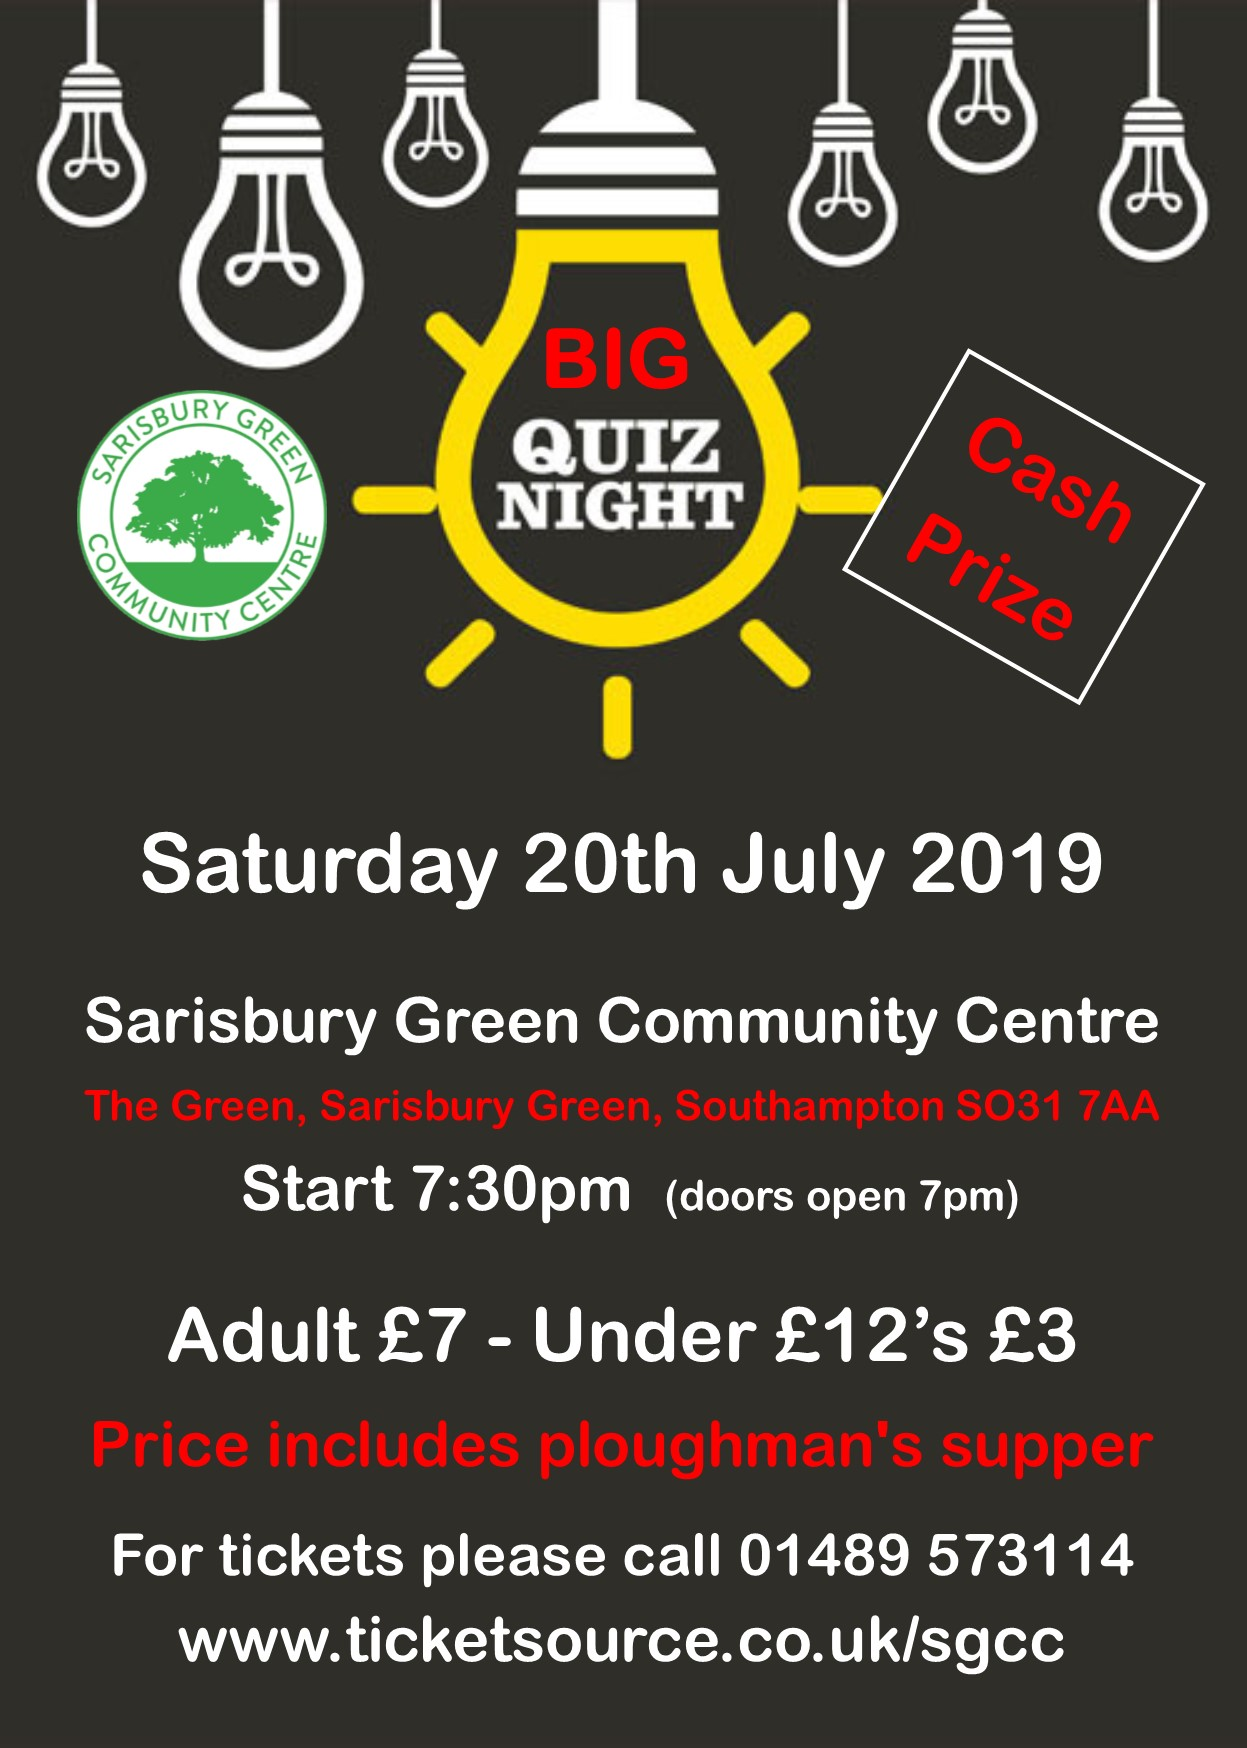 Sarisbury Green Community Centre Event Tickets From Ticketsource